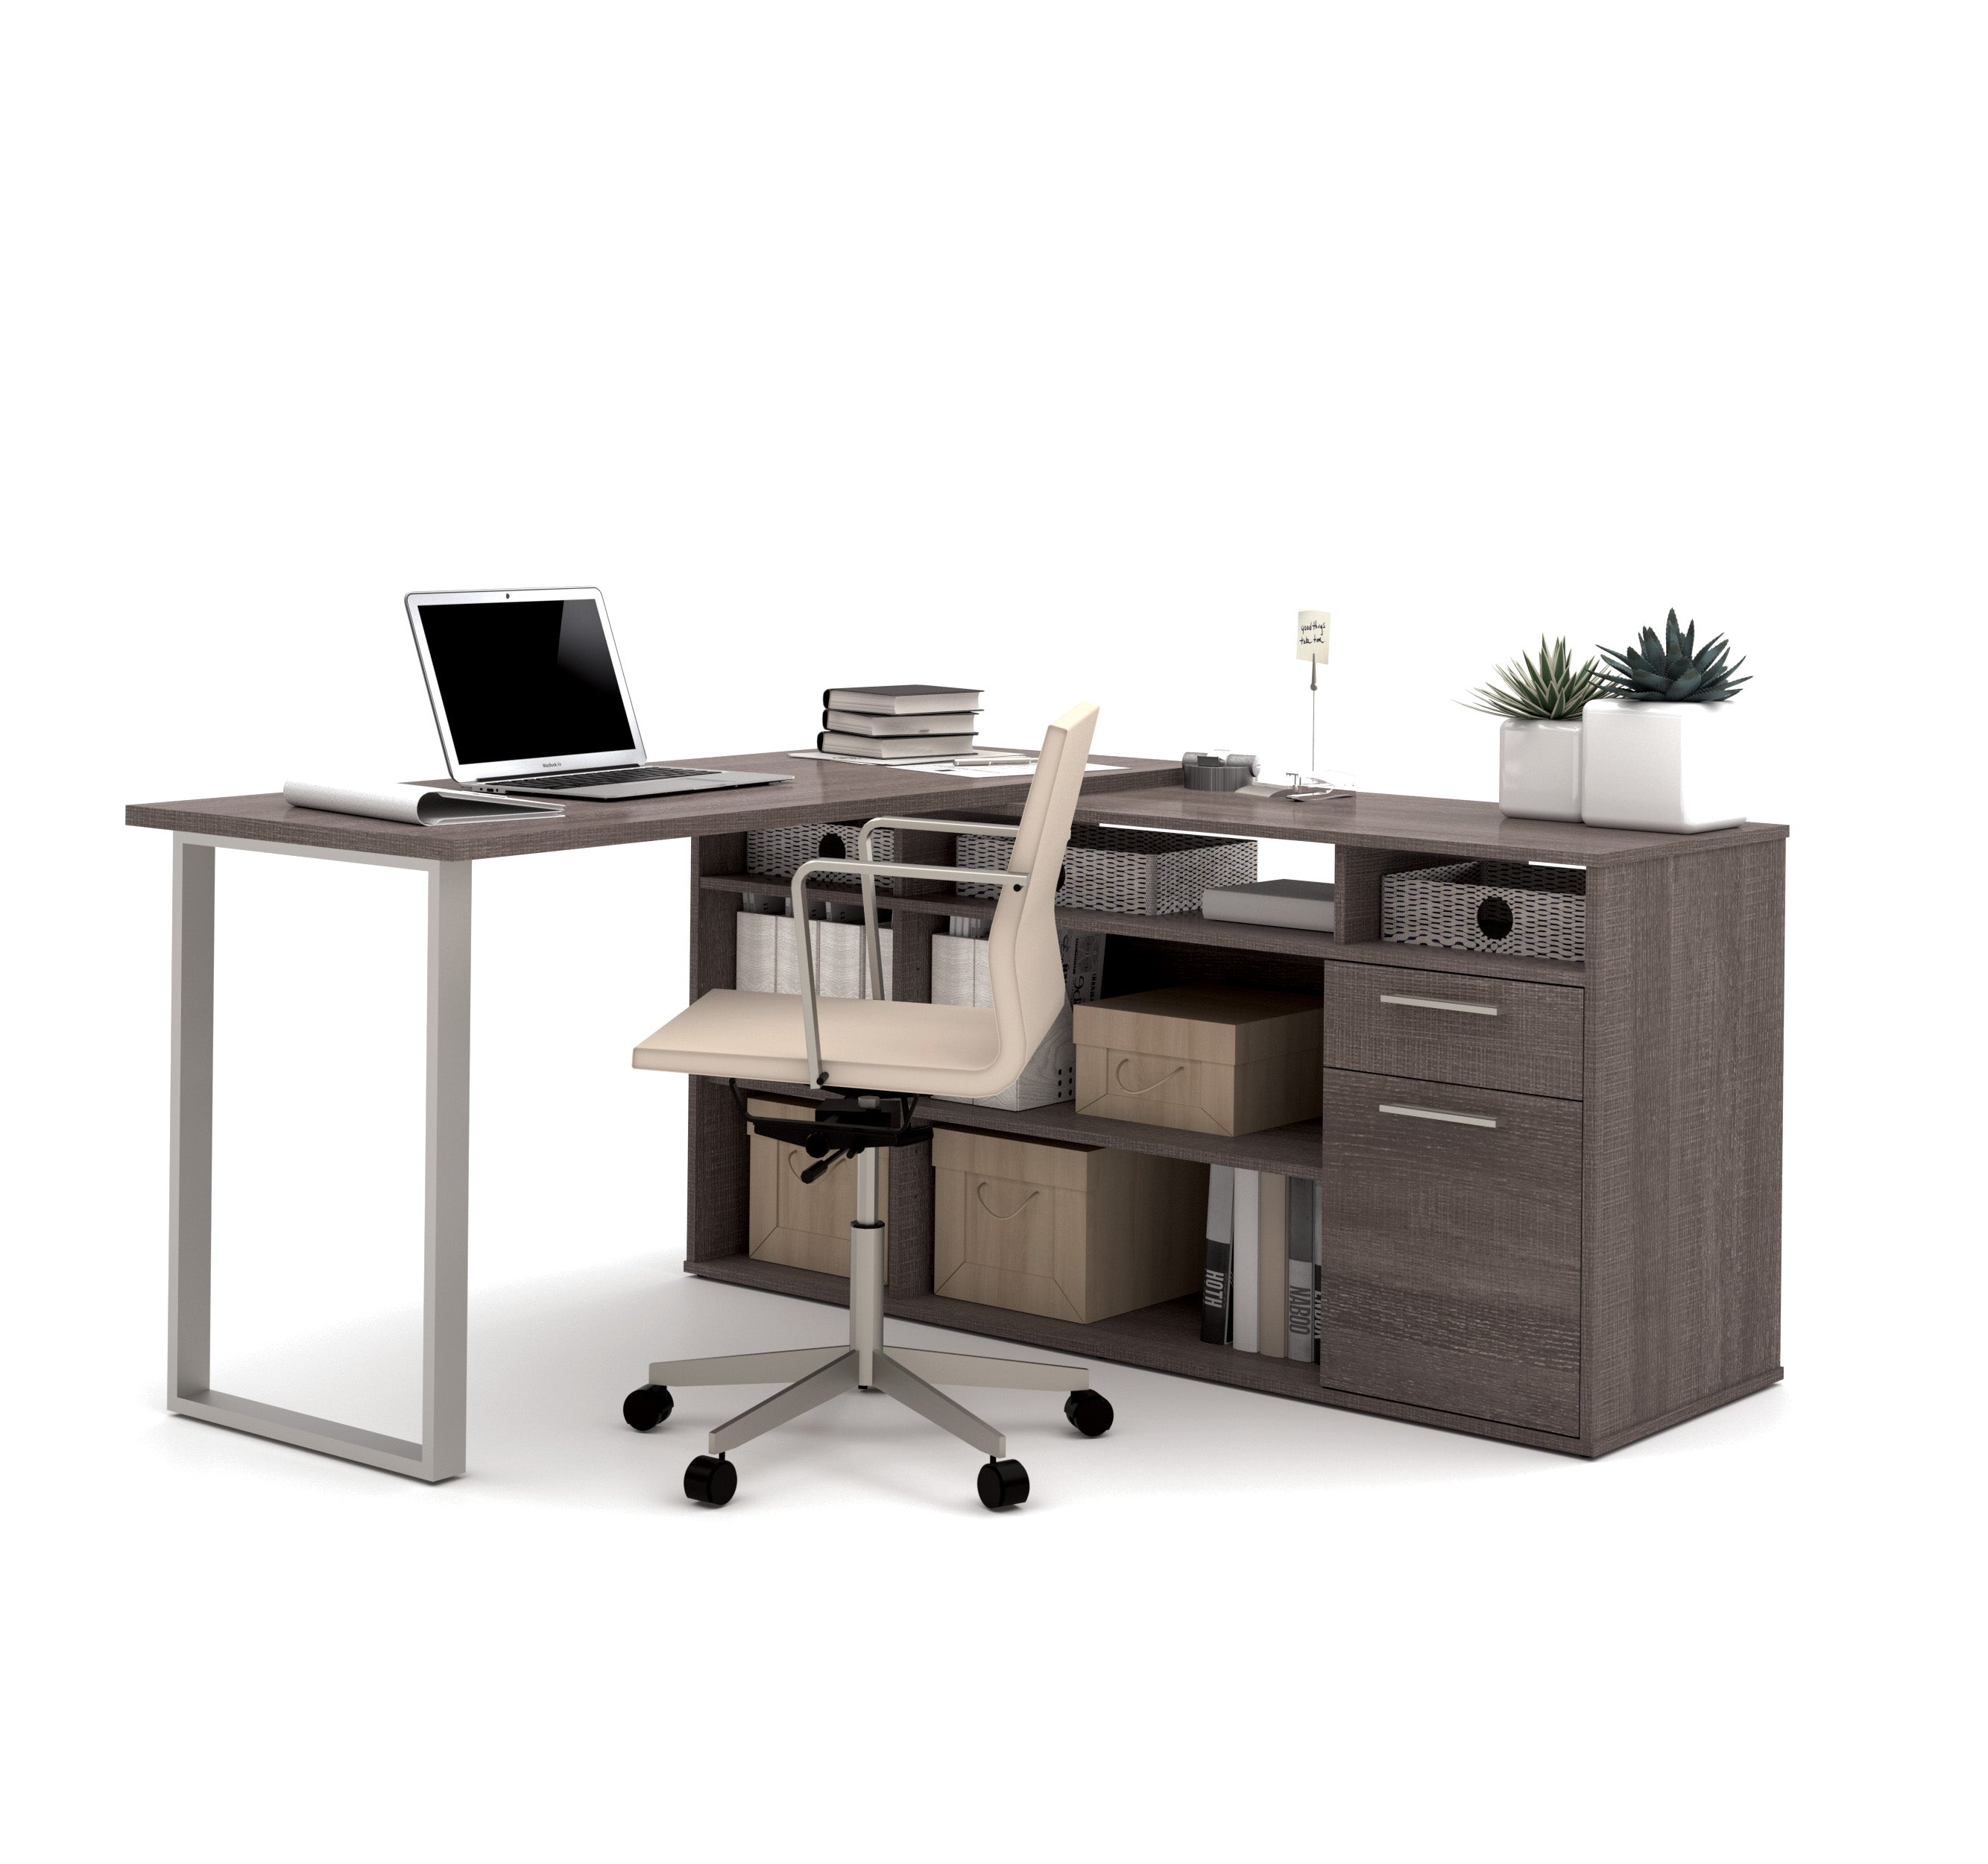 onsingularity office stylish contemporary corner furniture pinterest in l ideas computer room veneered best throughout grey com gray some on shaped desk